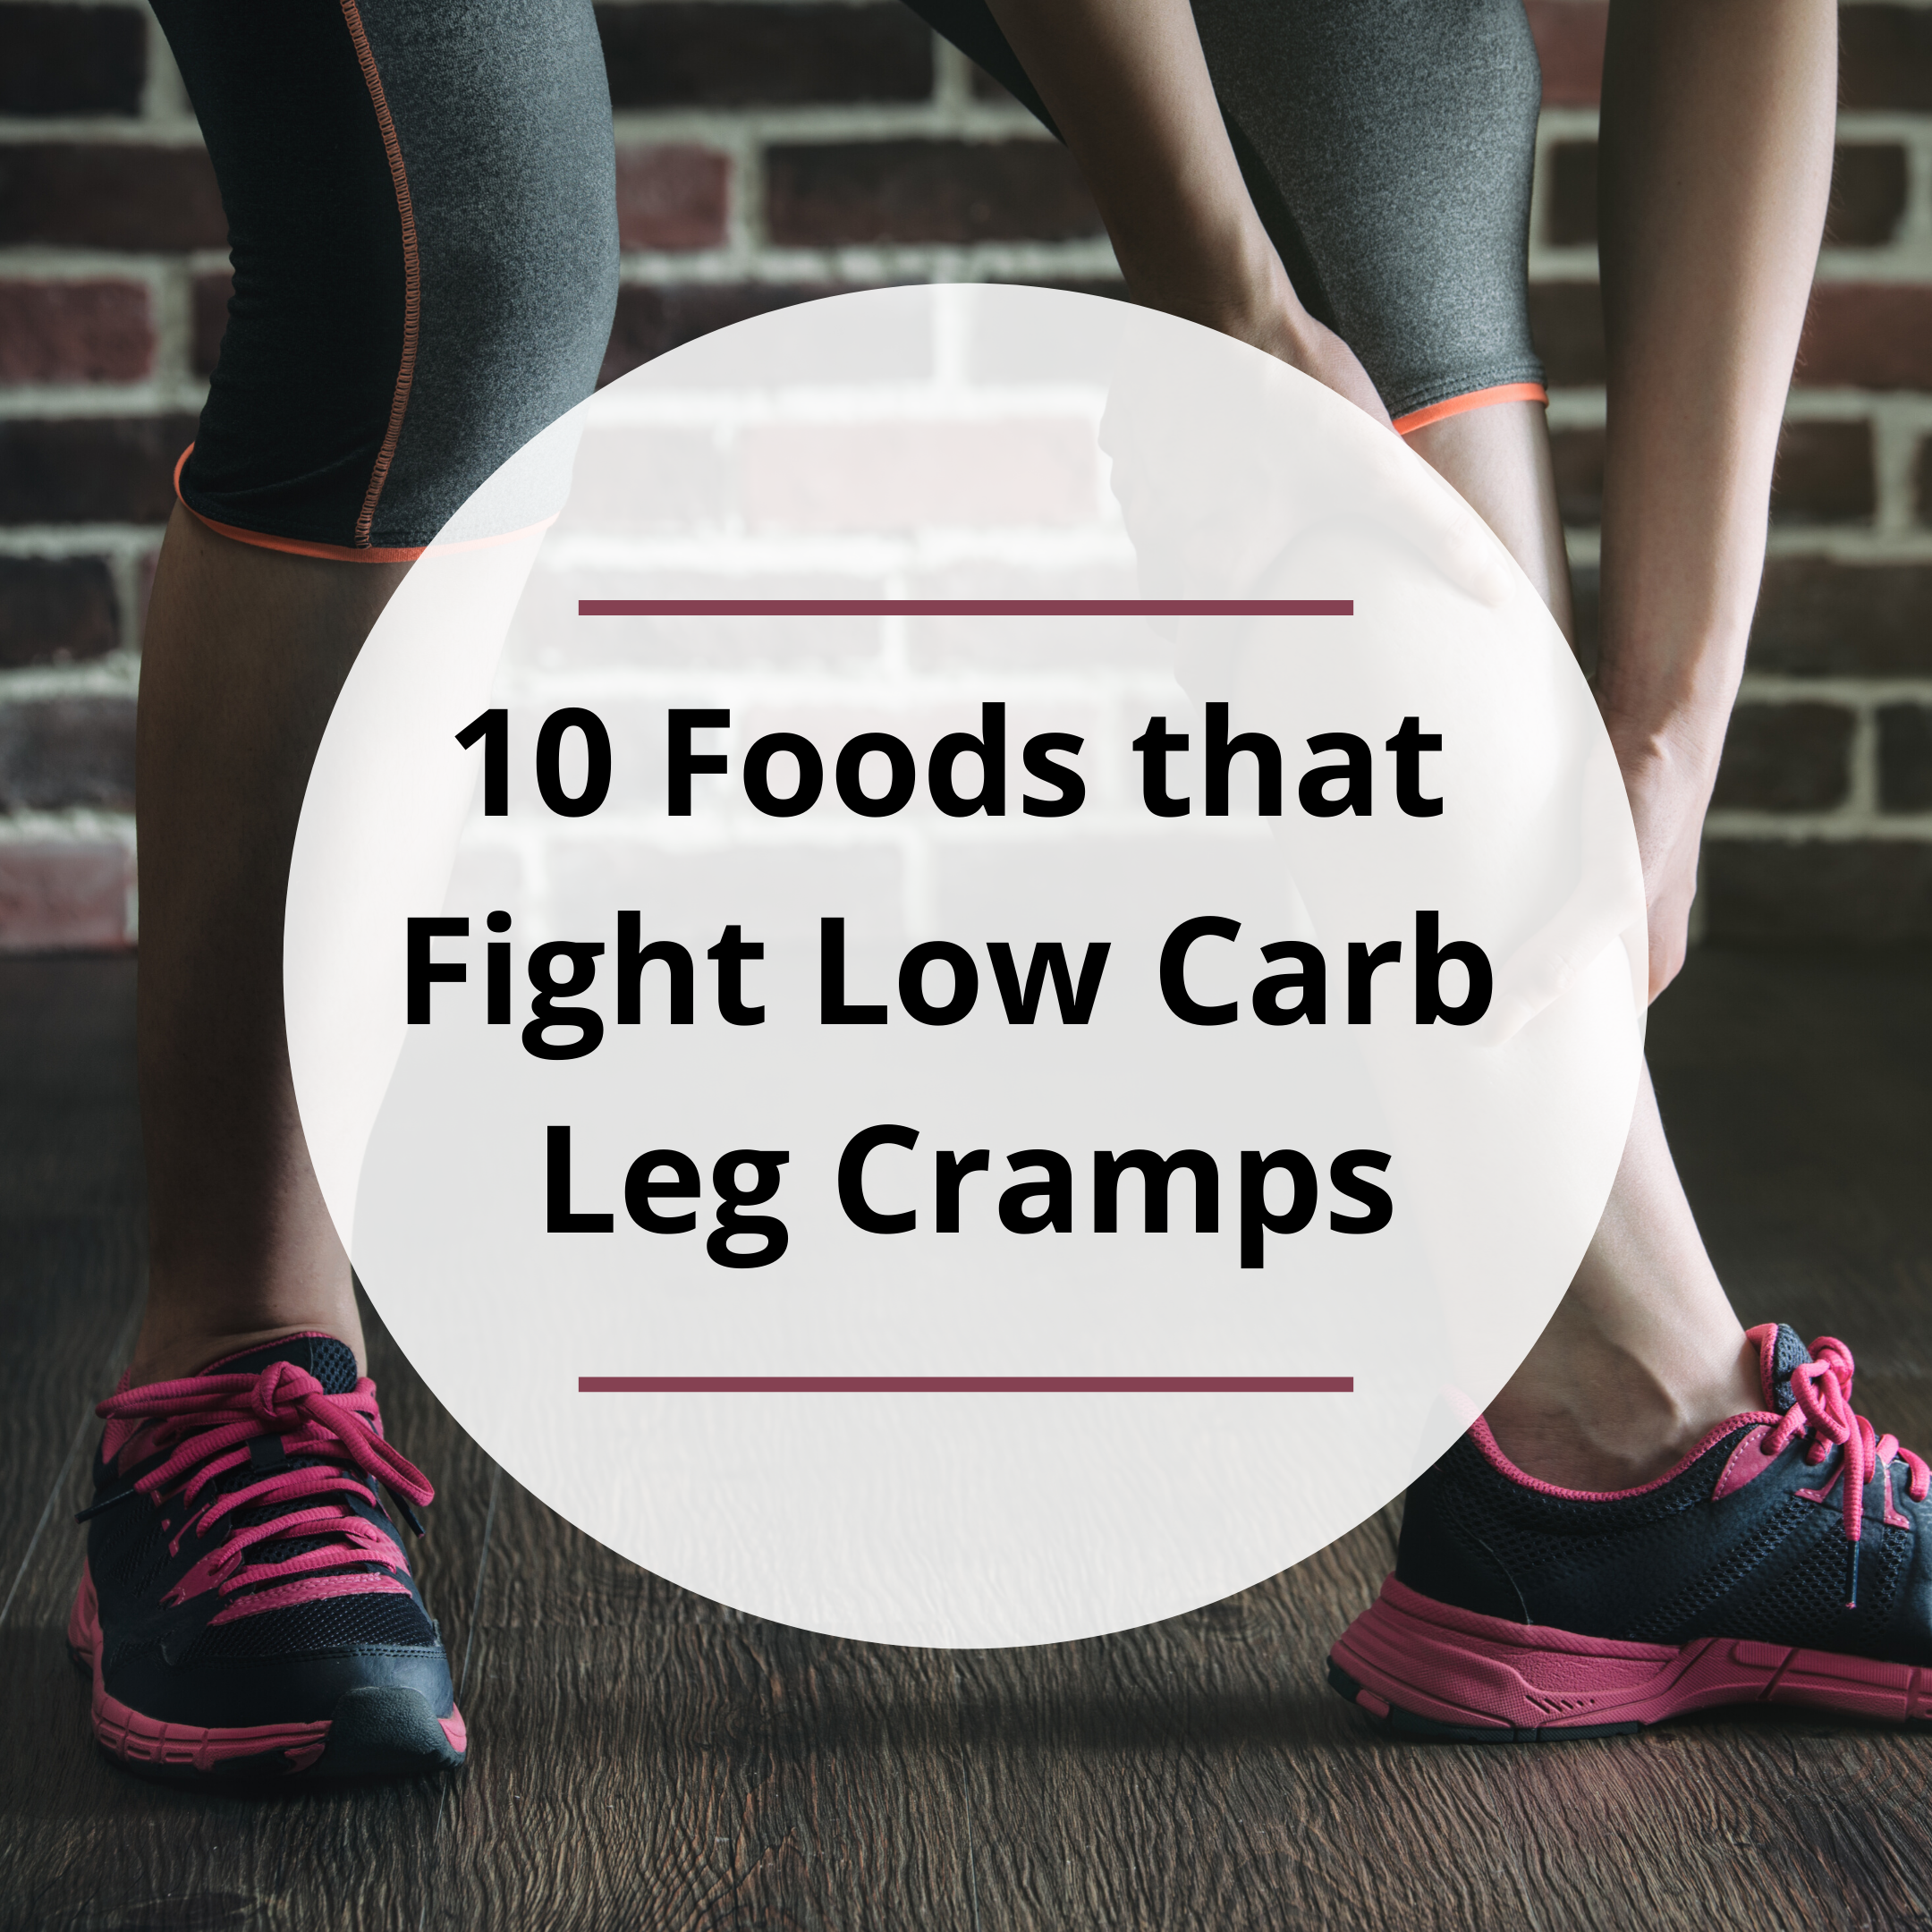 10 Foods that Fight Low Carb Leg Cramps